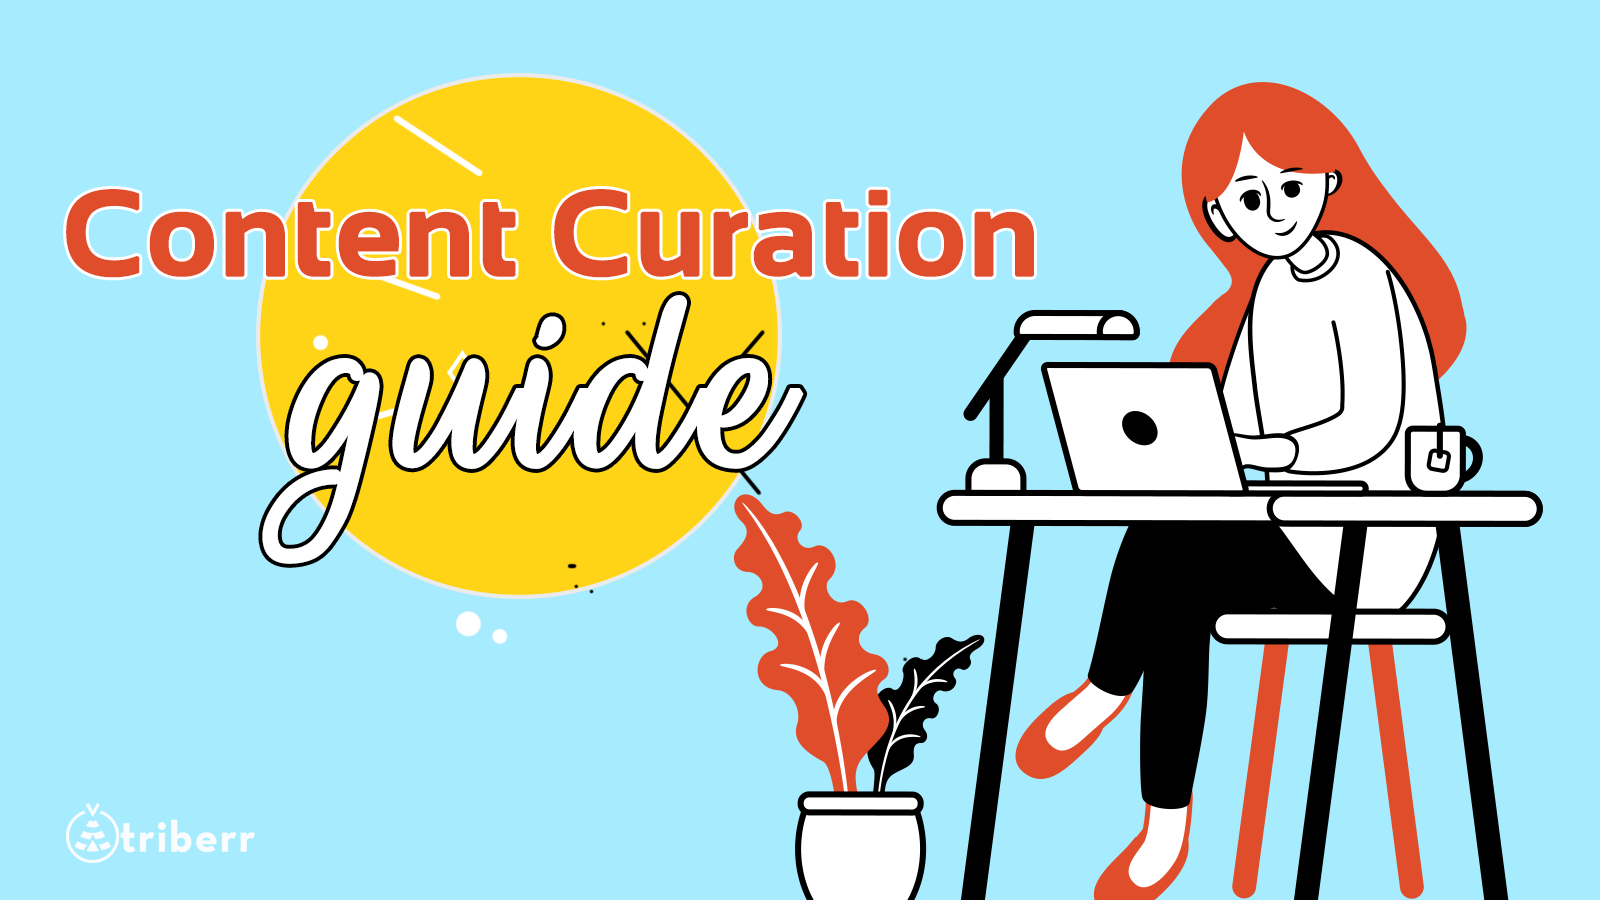 Content Curation Guide